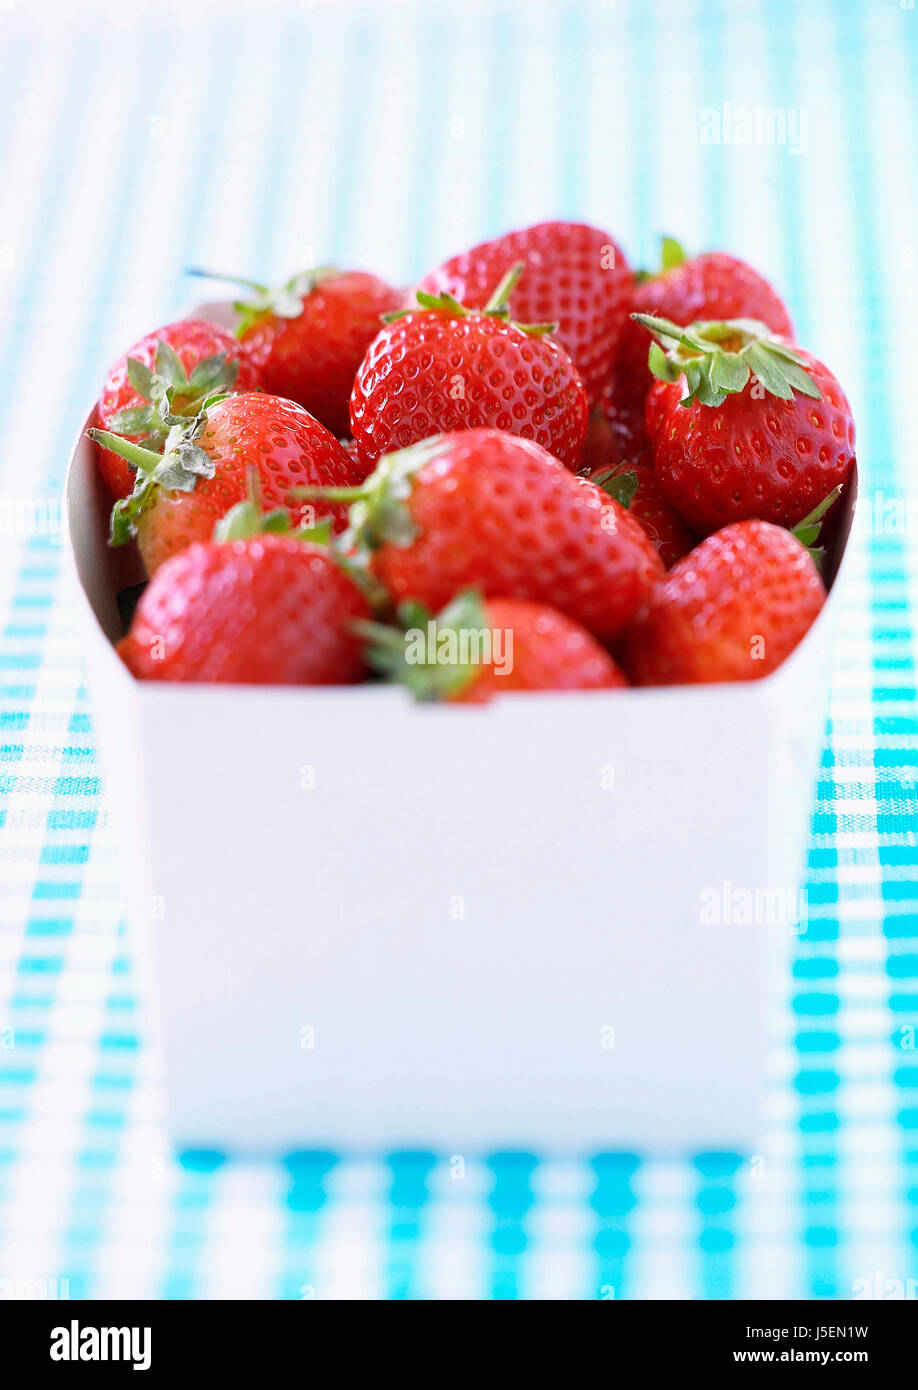 Strawberry, Fragaria x ananassa, Studio shot of red fruit in container. - Stock Image